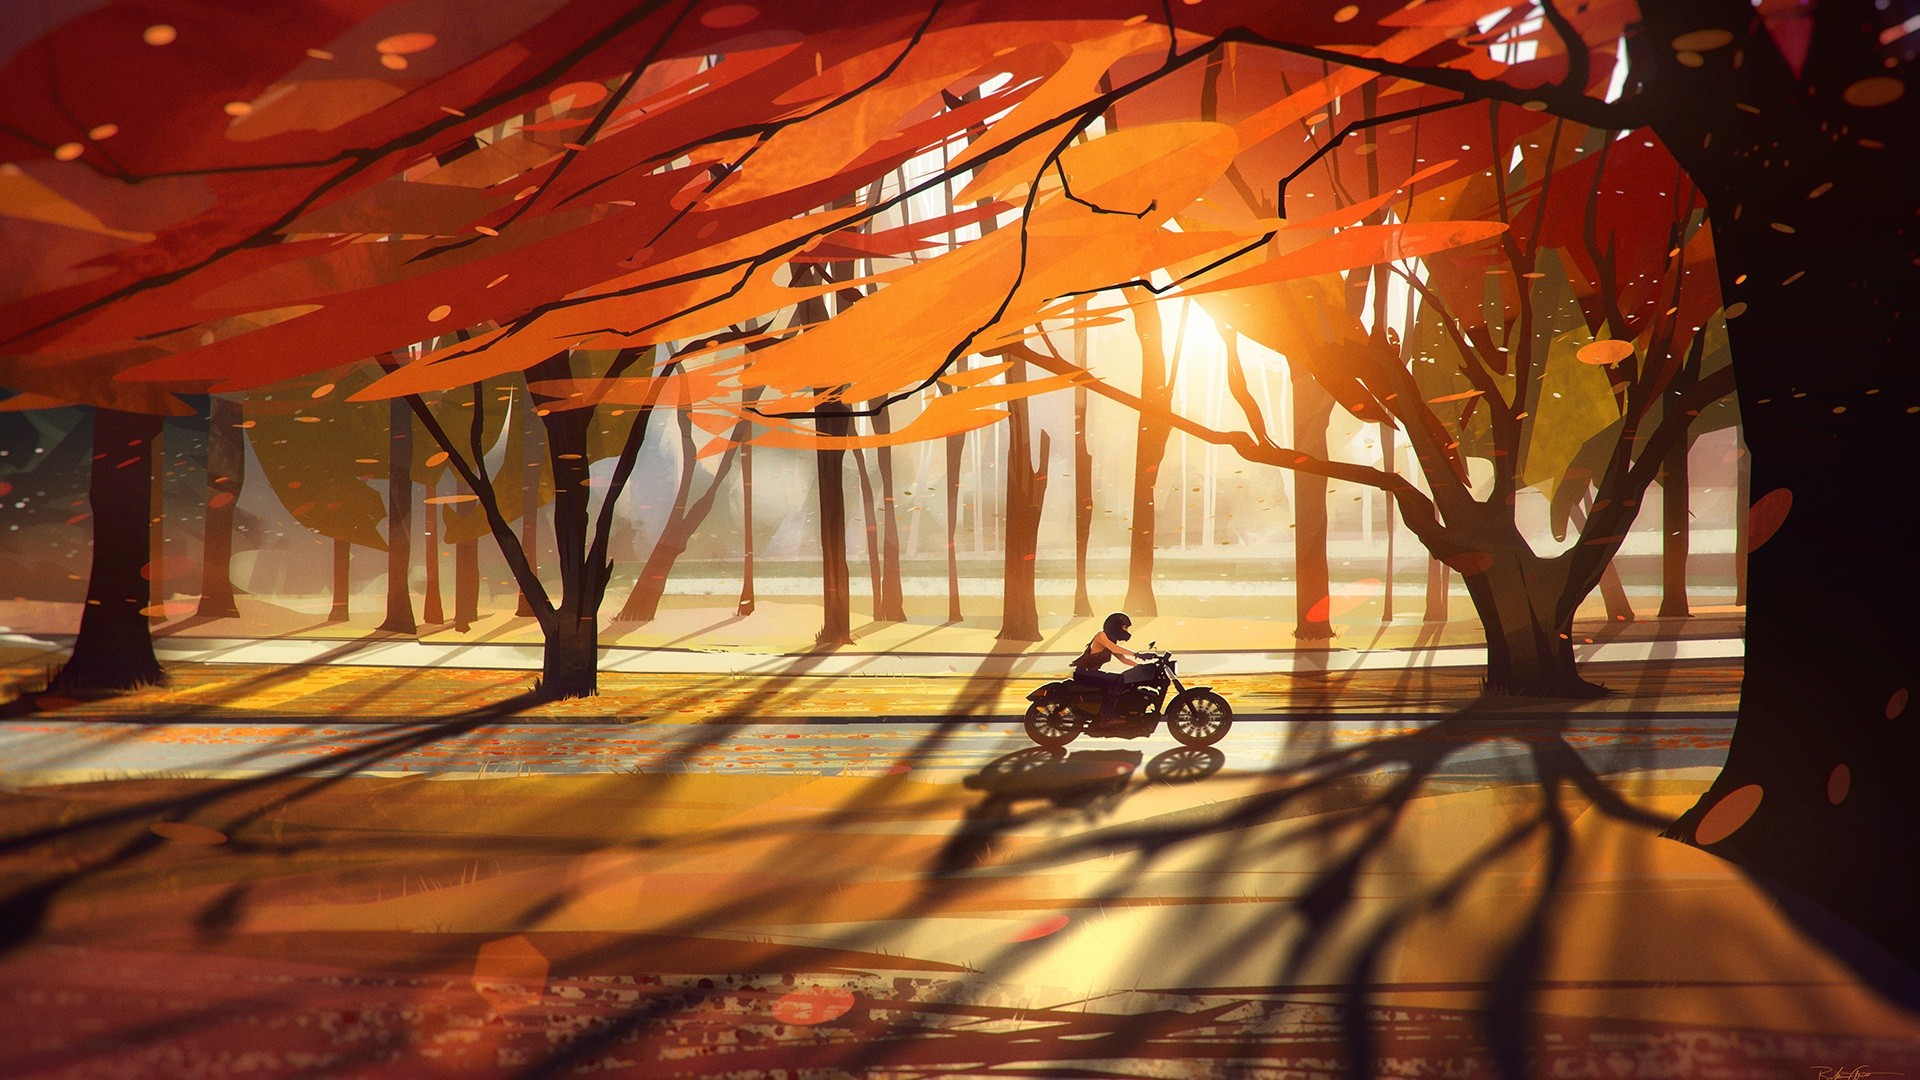 General 1920x1080 Heavy bike nature sunset road artwork fall motorcycle trees vehicle